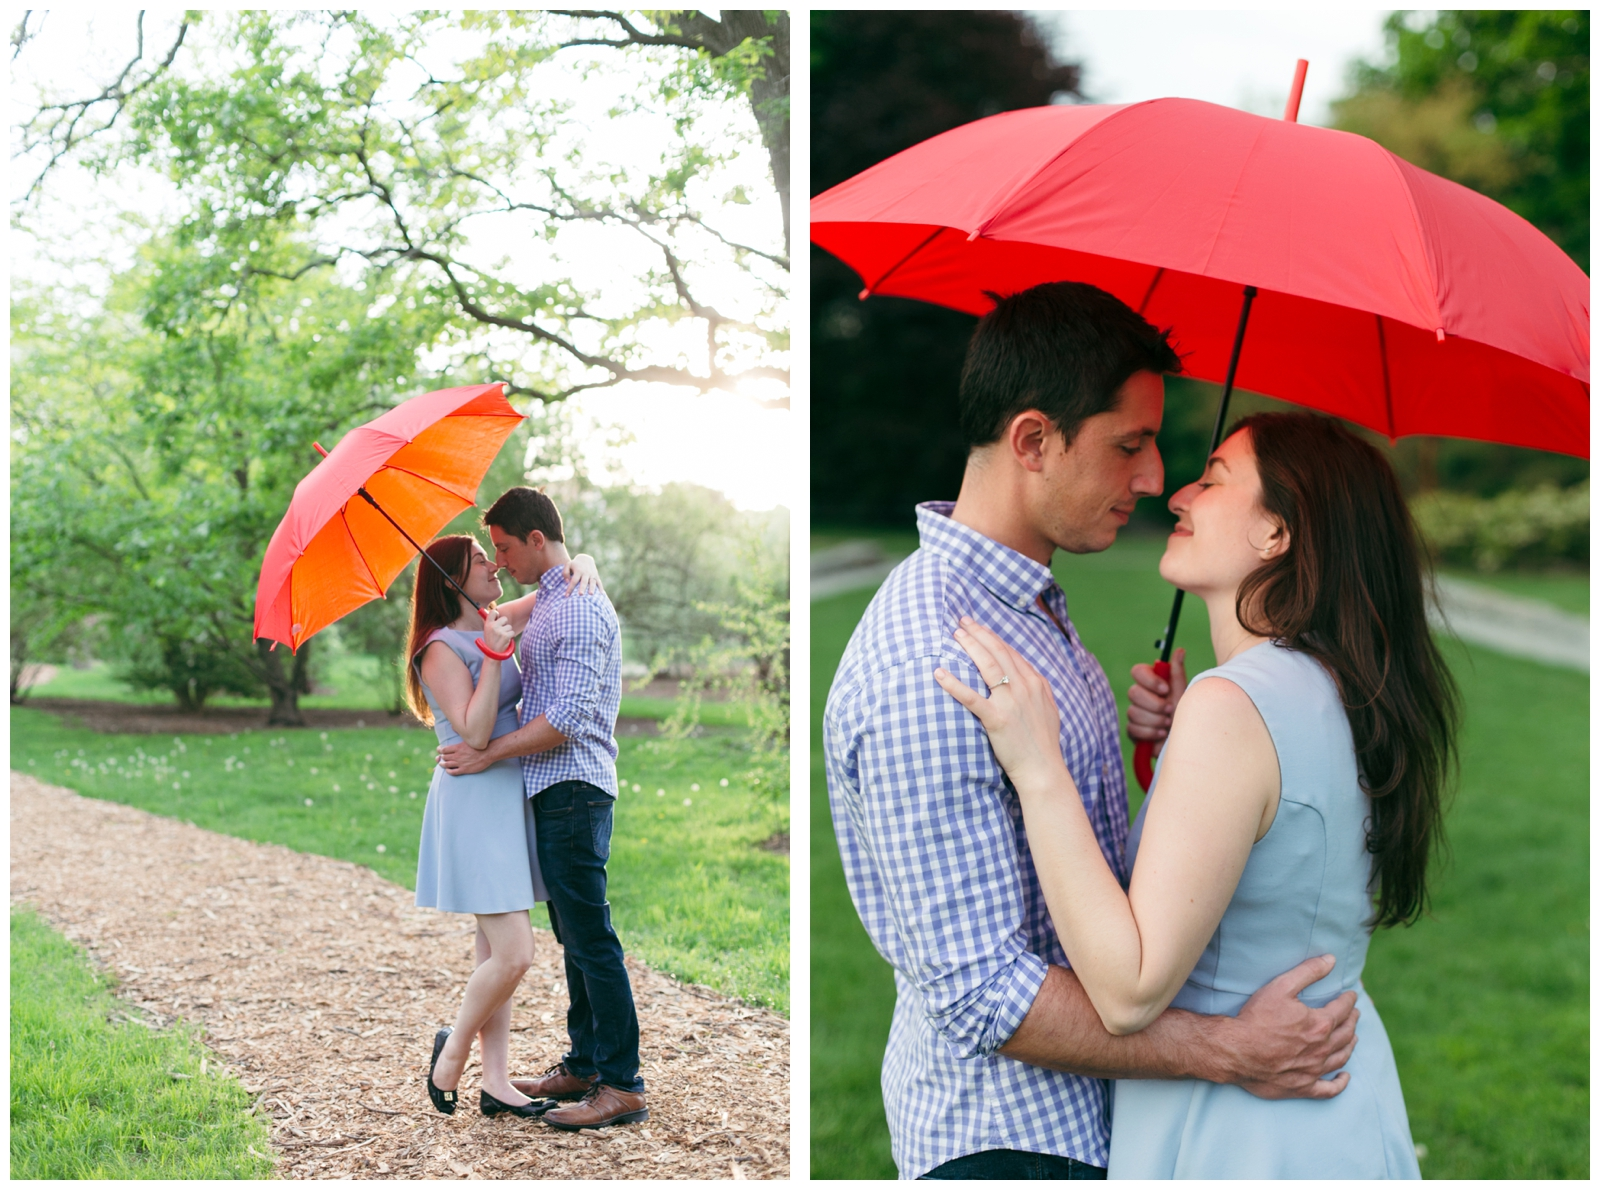 Arnold-Arboretum-Engagement-Boston-Wedding-Photographer-Bailey-Q-Photo-023.jpg